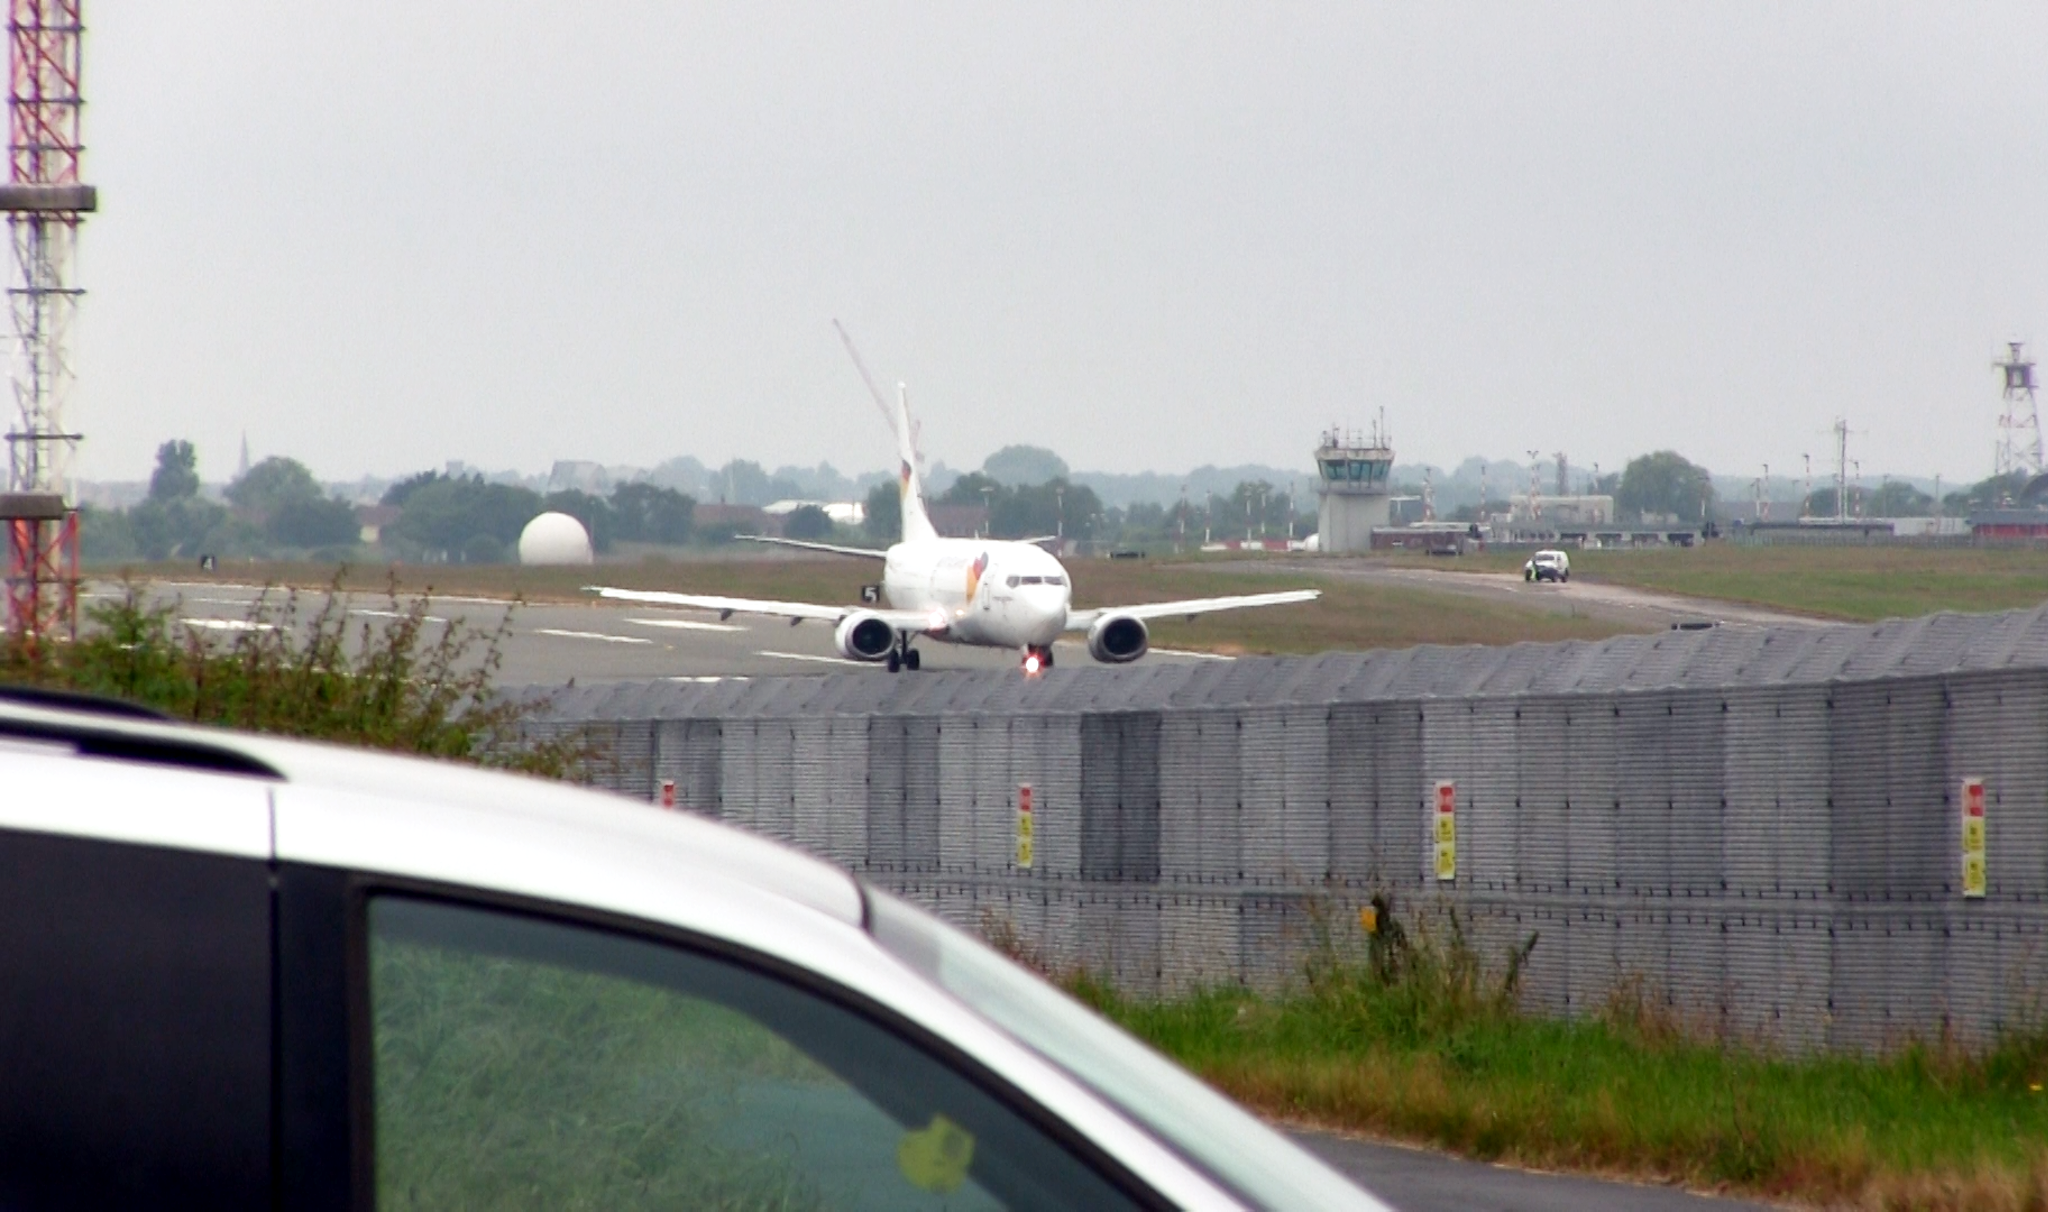 Village airport: A cargo plane taxis down Warton's runway, bound for Saudi Arabia (Photo: Phil Miller / Declassified UK)